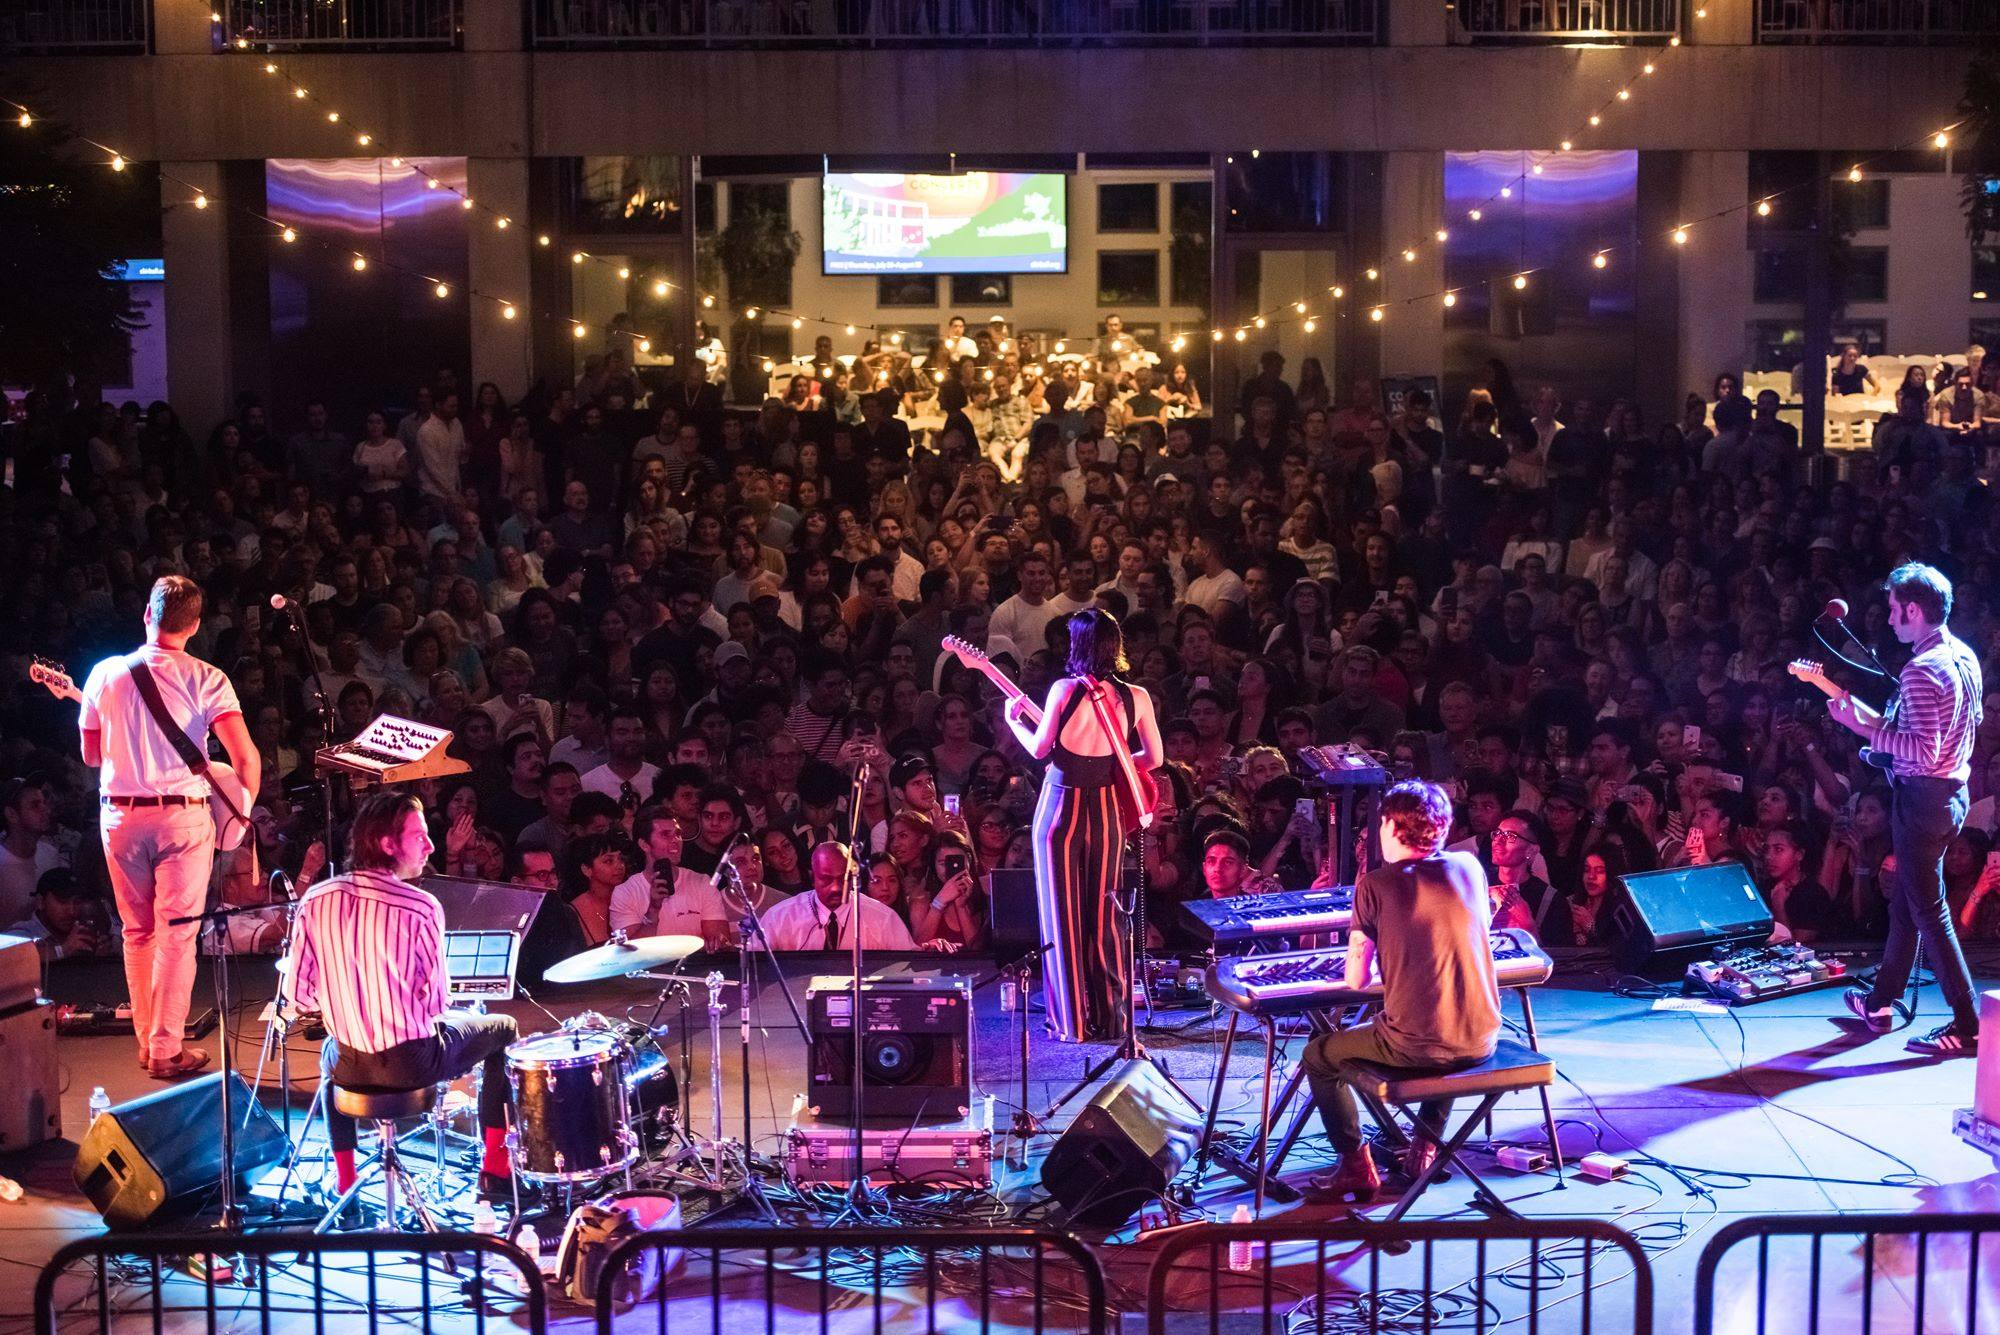 The Marias performing at Skirball Cultural Center Sunset Concerts in 2018